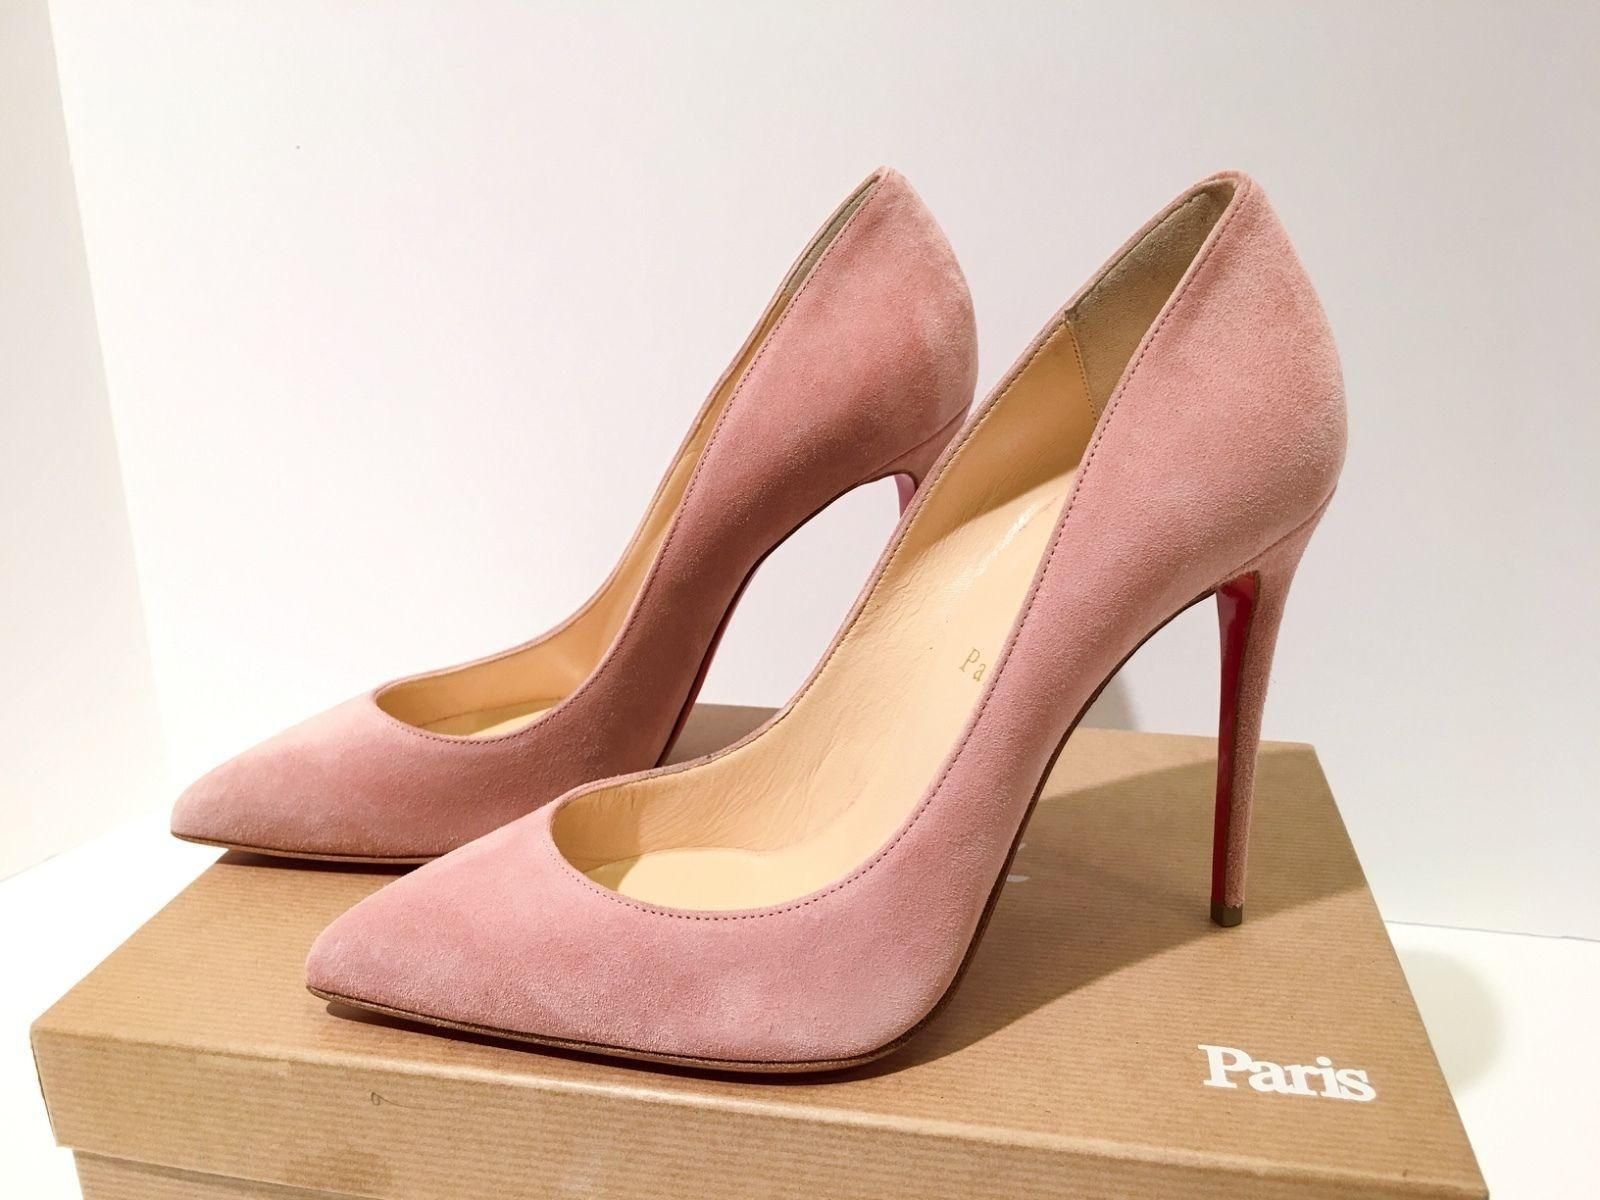 e6ff9db723c Christian Louboutin Nib Size 36.5 Suede Pigalle Follies 100 Pink Rose Pumps.  Get the must-have pumps of this season! These Christian Louboutin Nib Size  36.5 ...